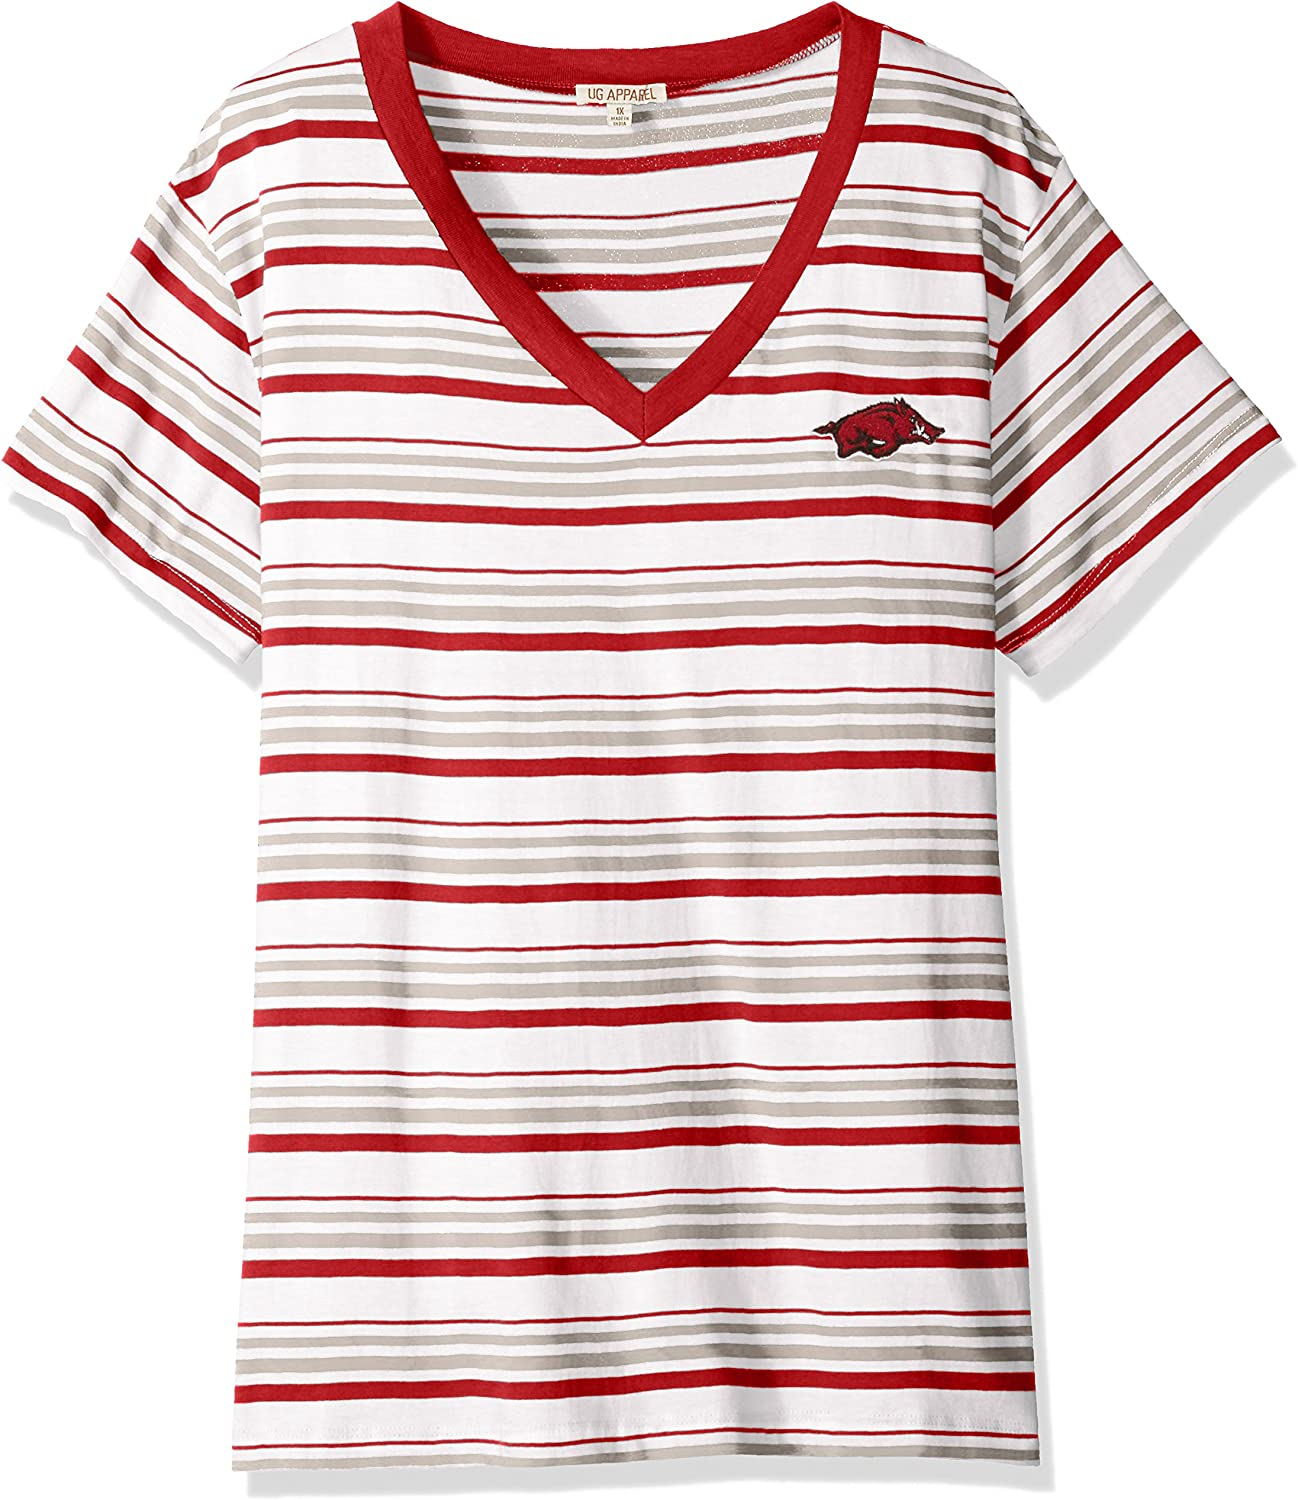 Shipping included UG Apparel NCAA Women's Popular popular Striped T-Shirt Tailgate